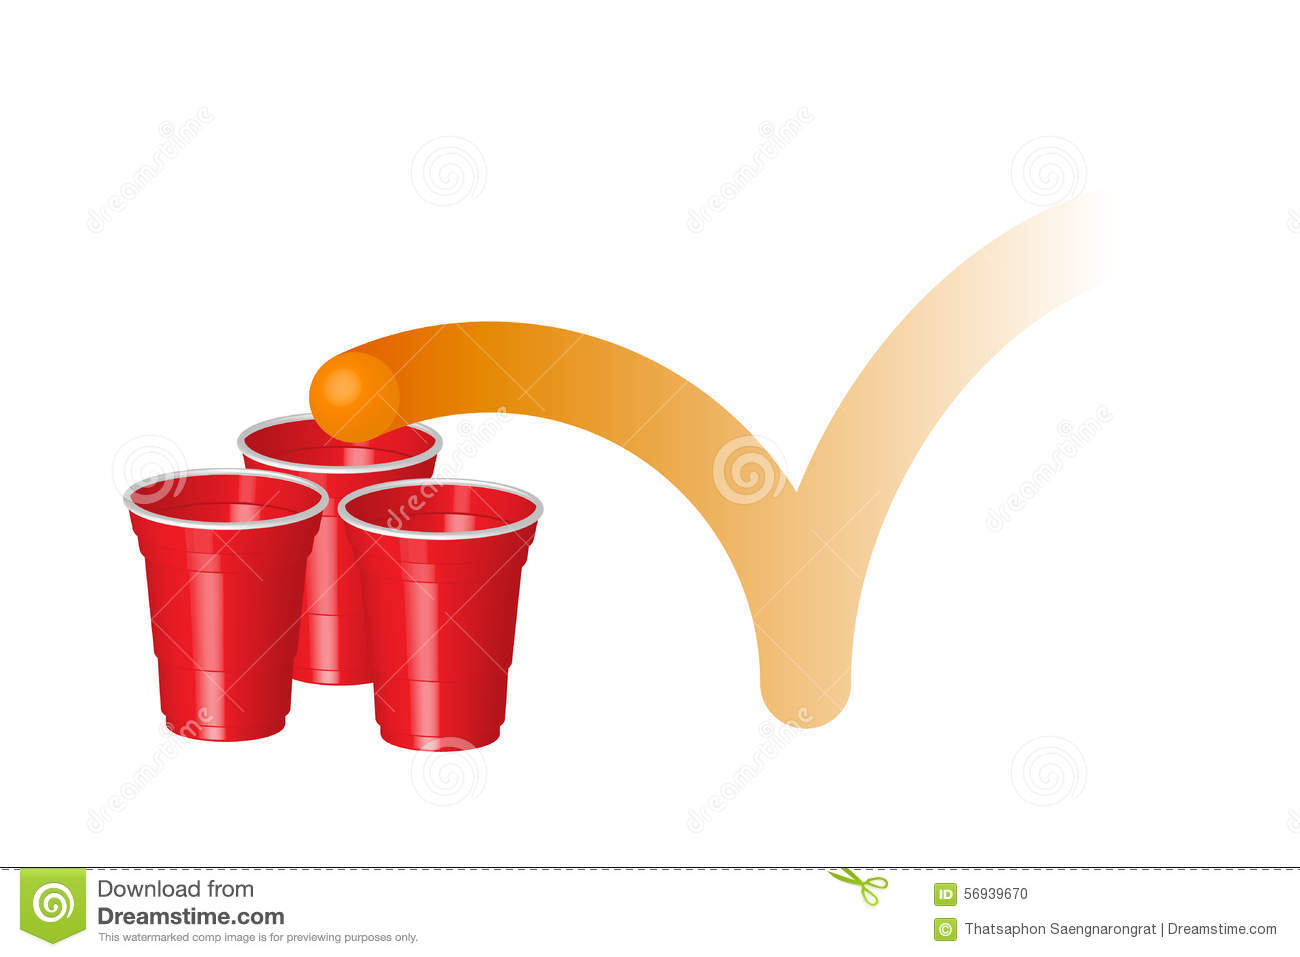 Top 6 Ping Pong Ball Games - Fun Games to Get the Party ...